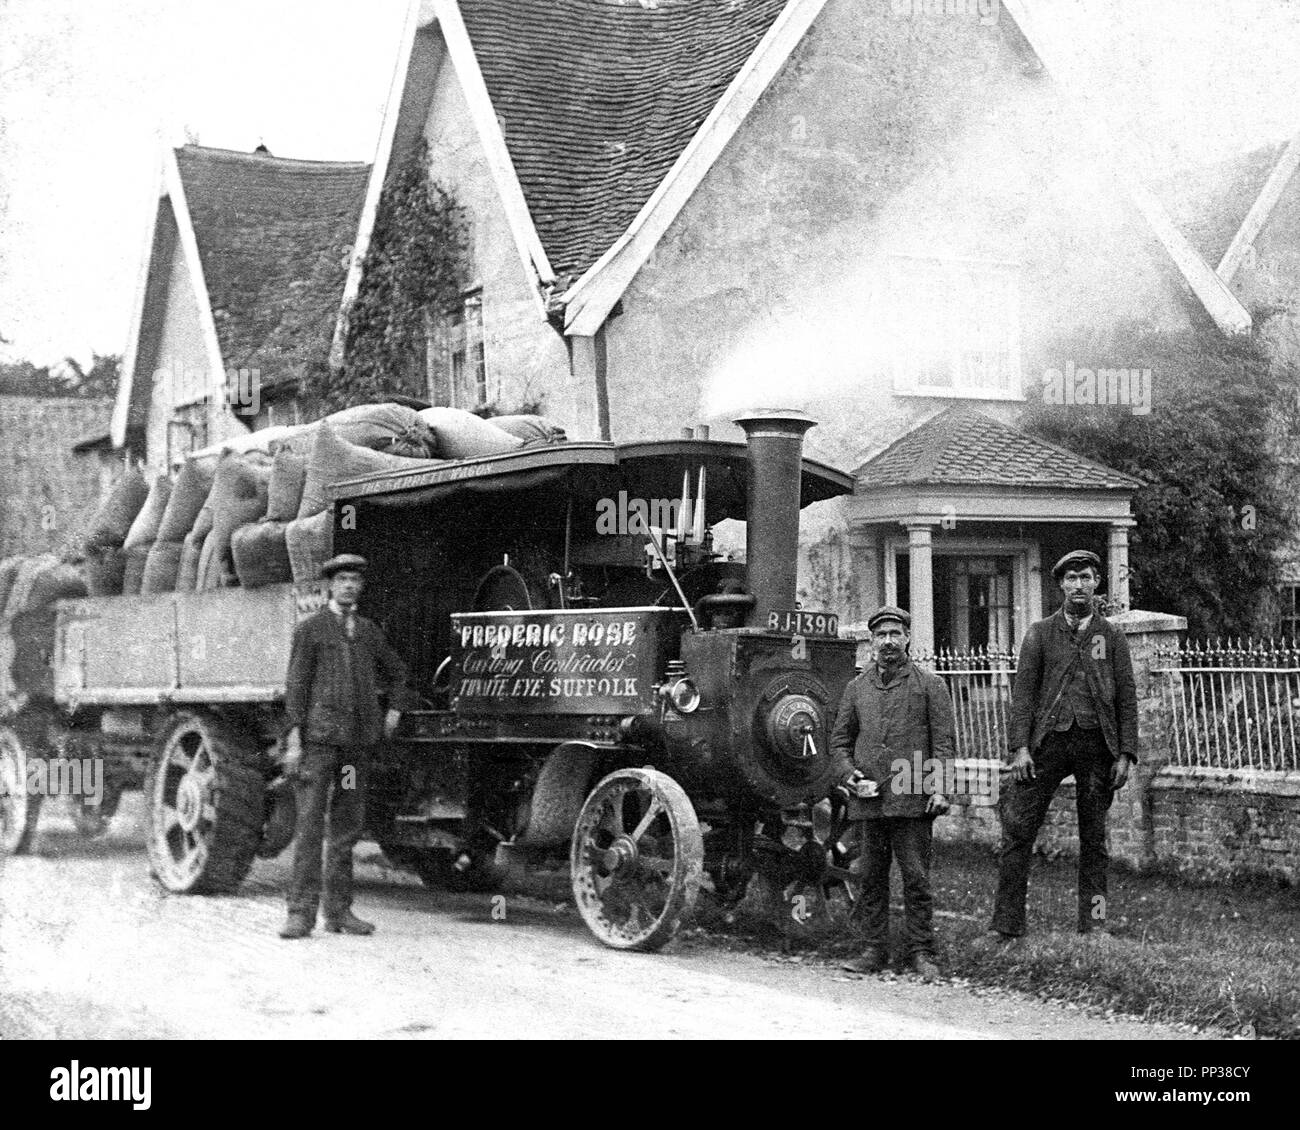 Zugmaschine im Thwaite (Suffolk), 1900 Stockbild